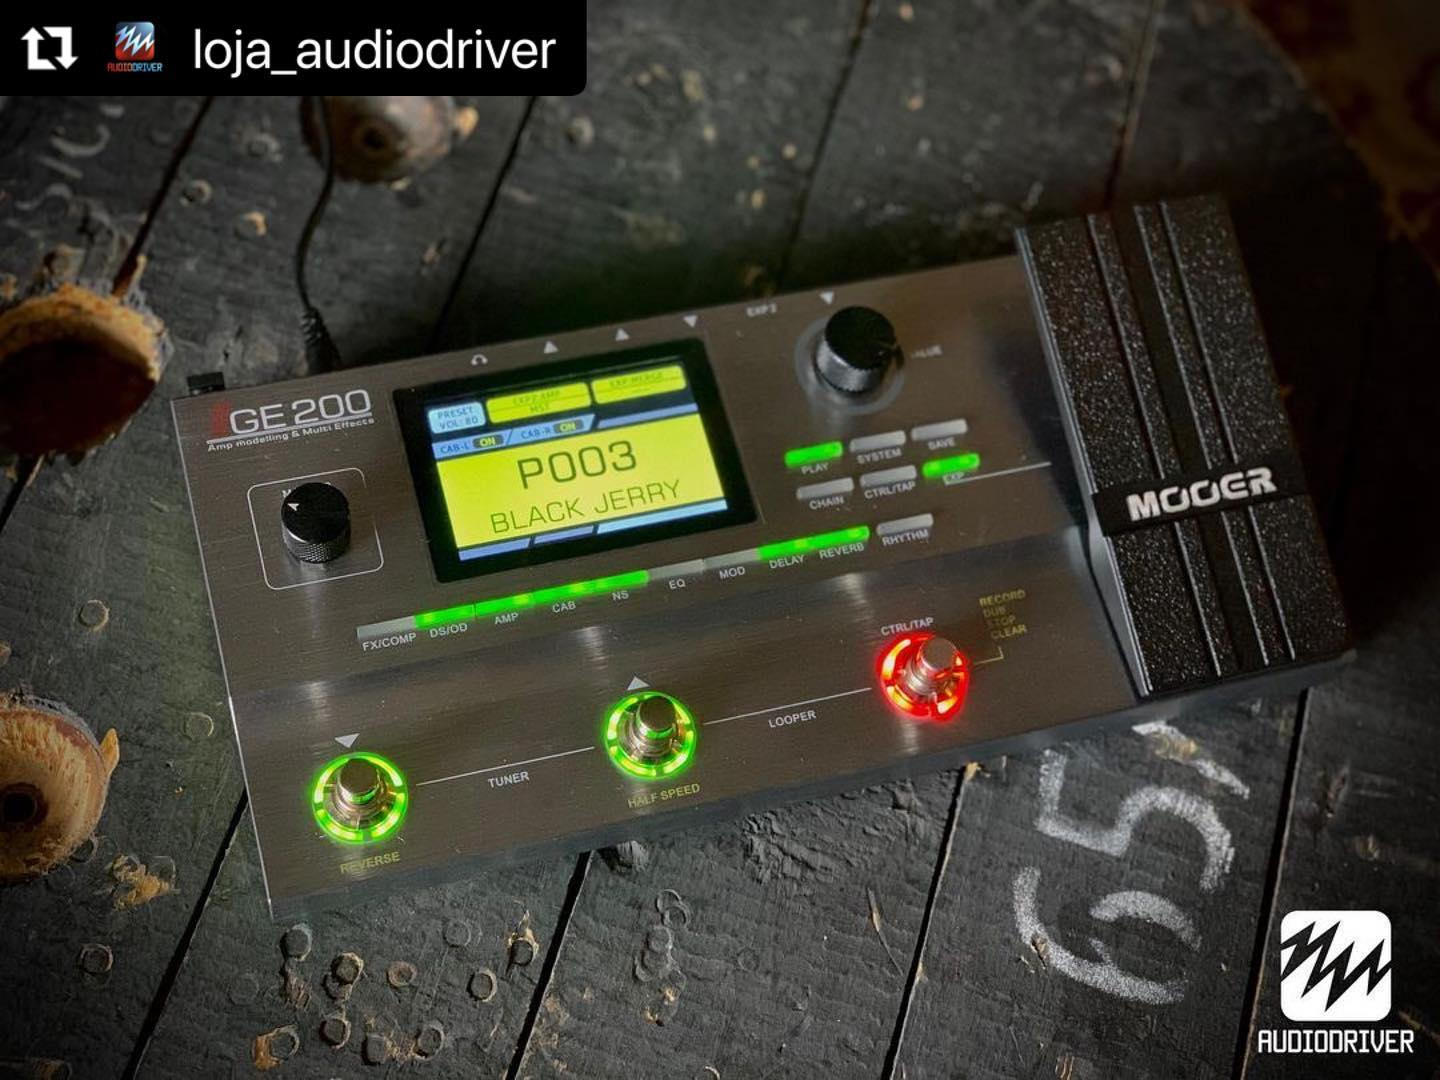 Great pic from a Mooer dealer in Brazil! Check them out! @loja_audiodriver